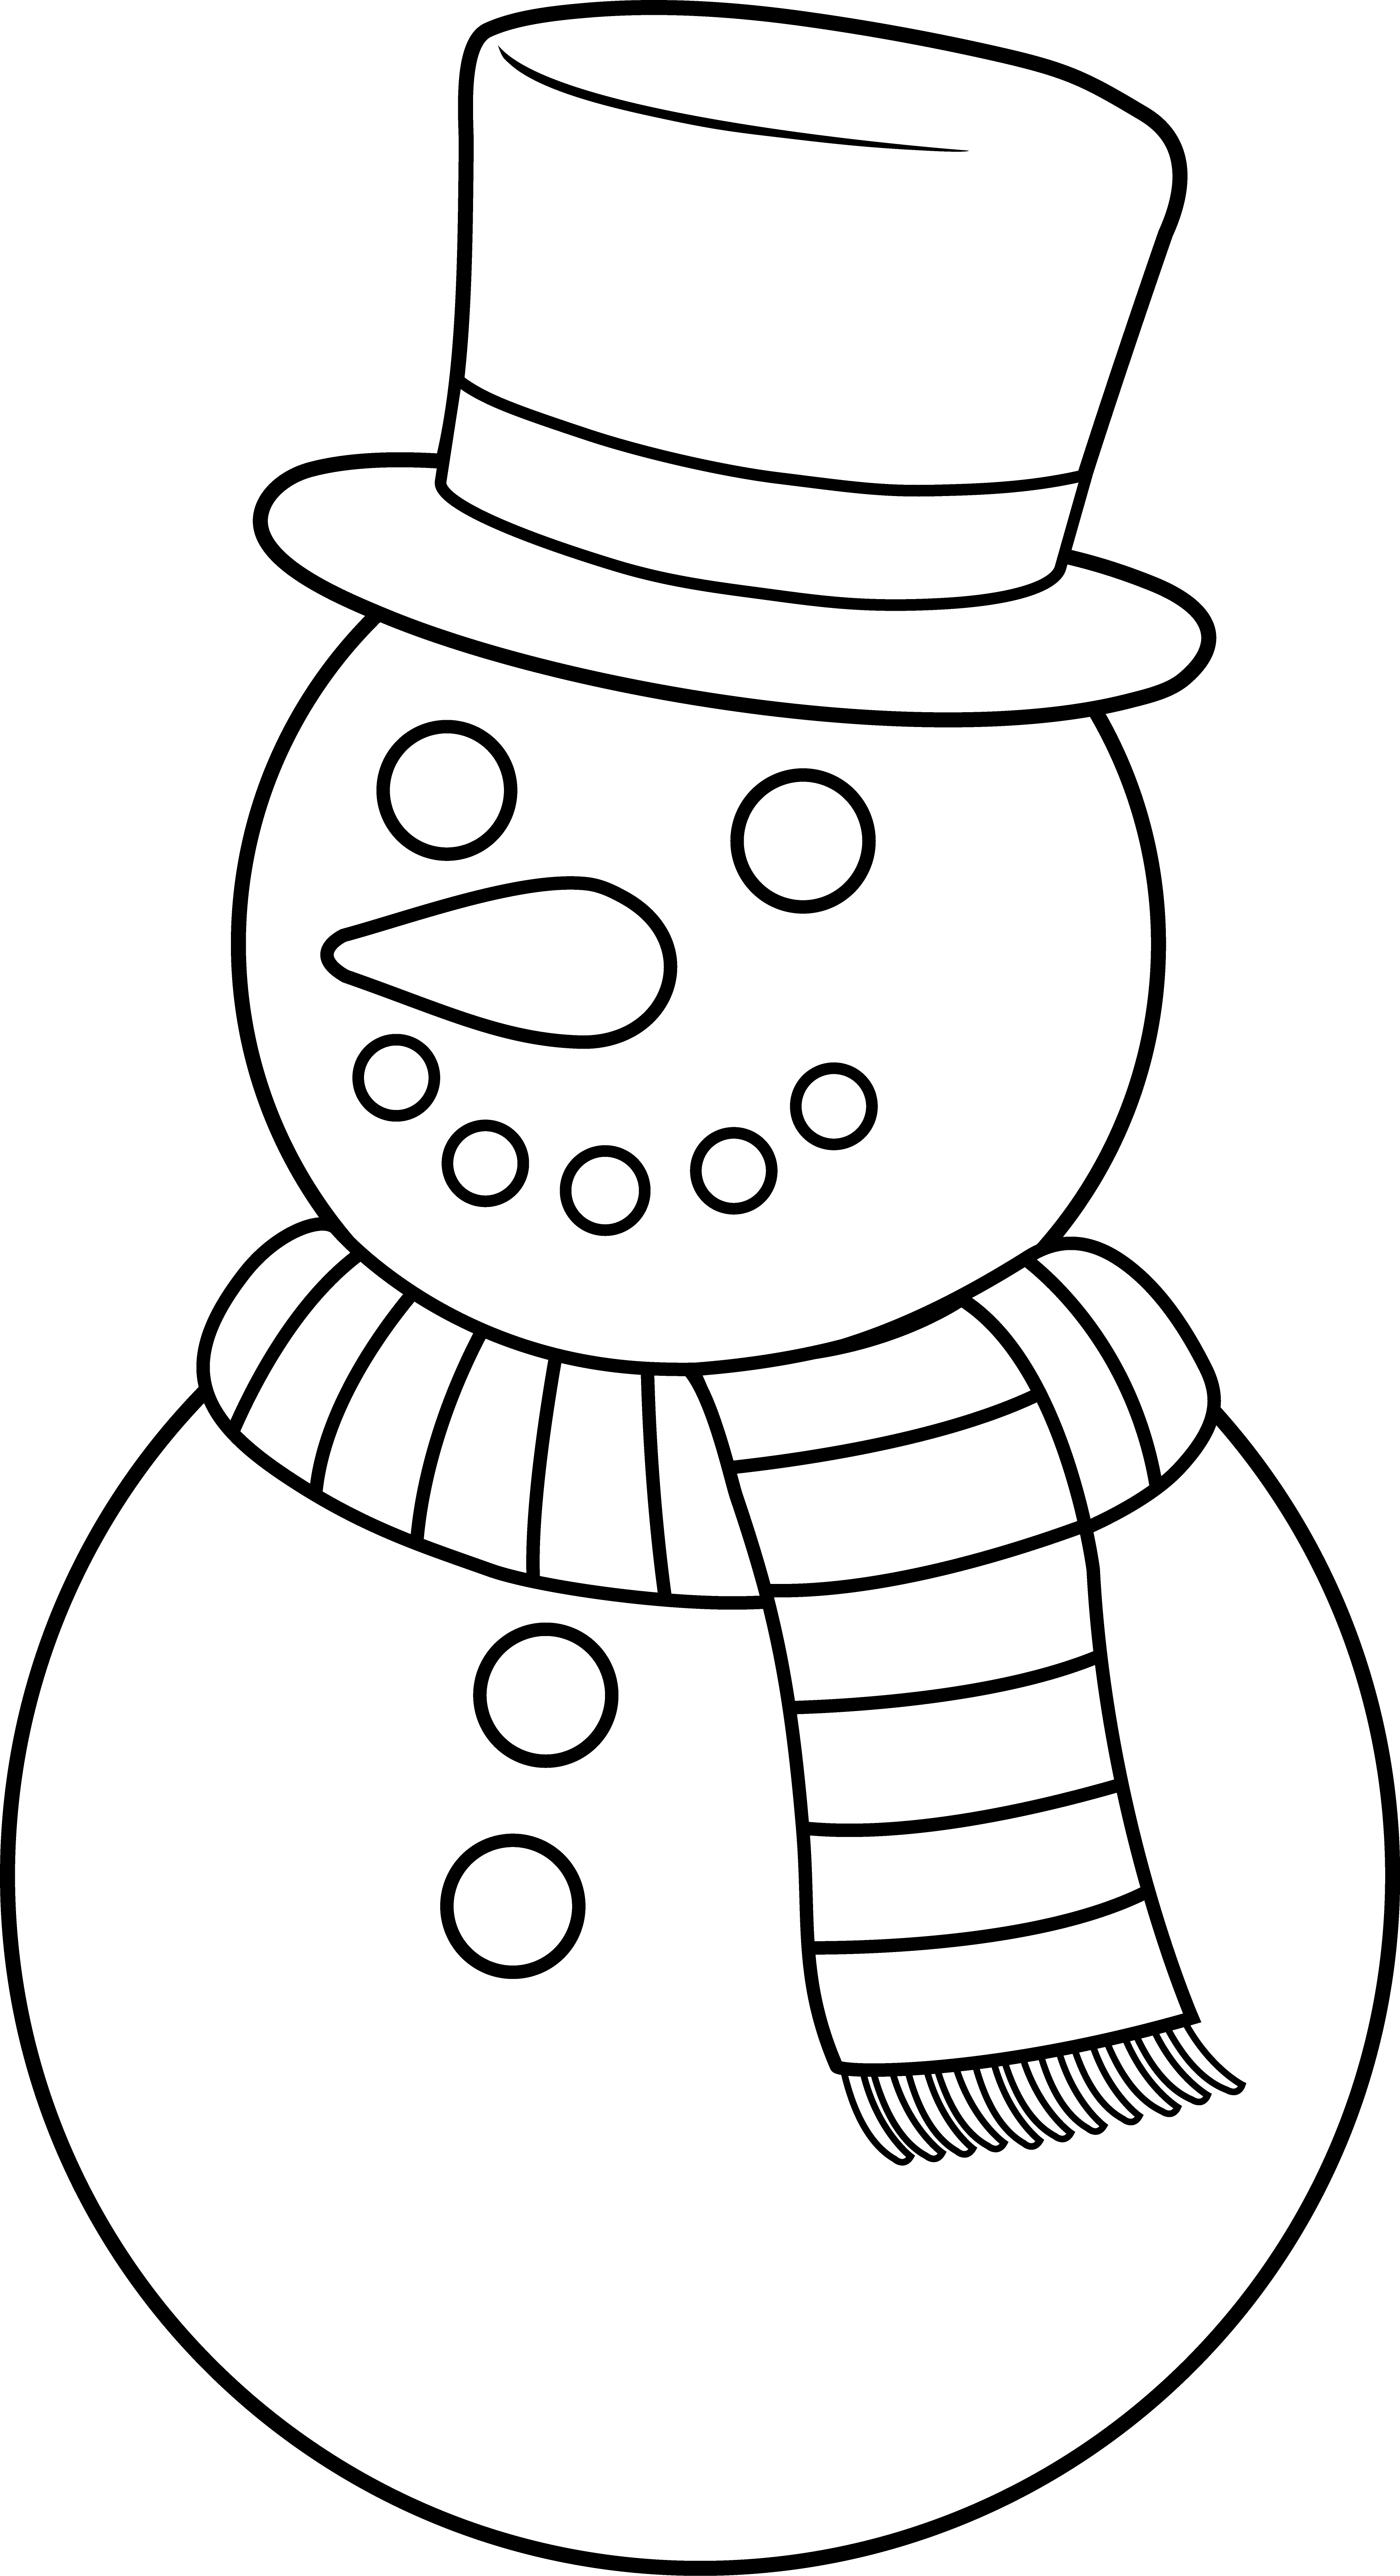 colorable christmas snowman christmas clipart black and white snowman png download full size clipart 1629099 pinclipart pinclipart